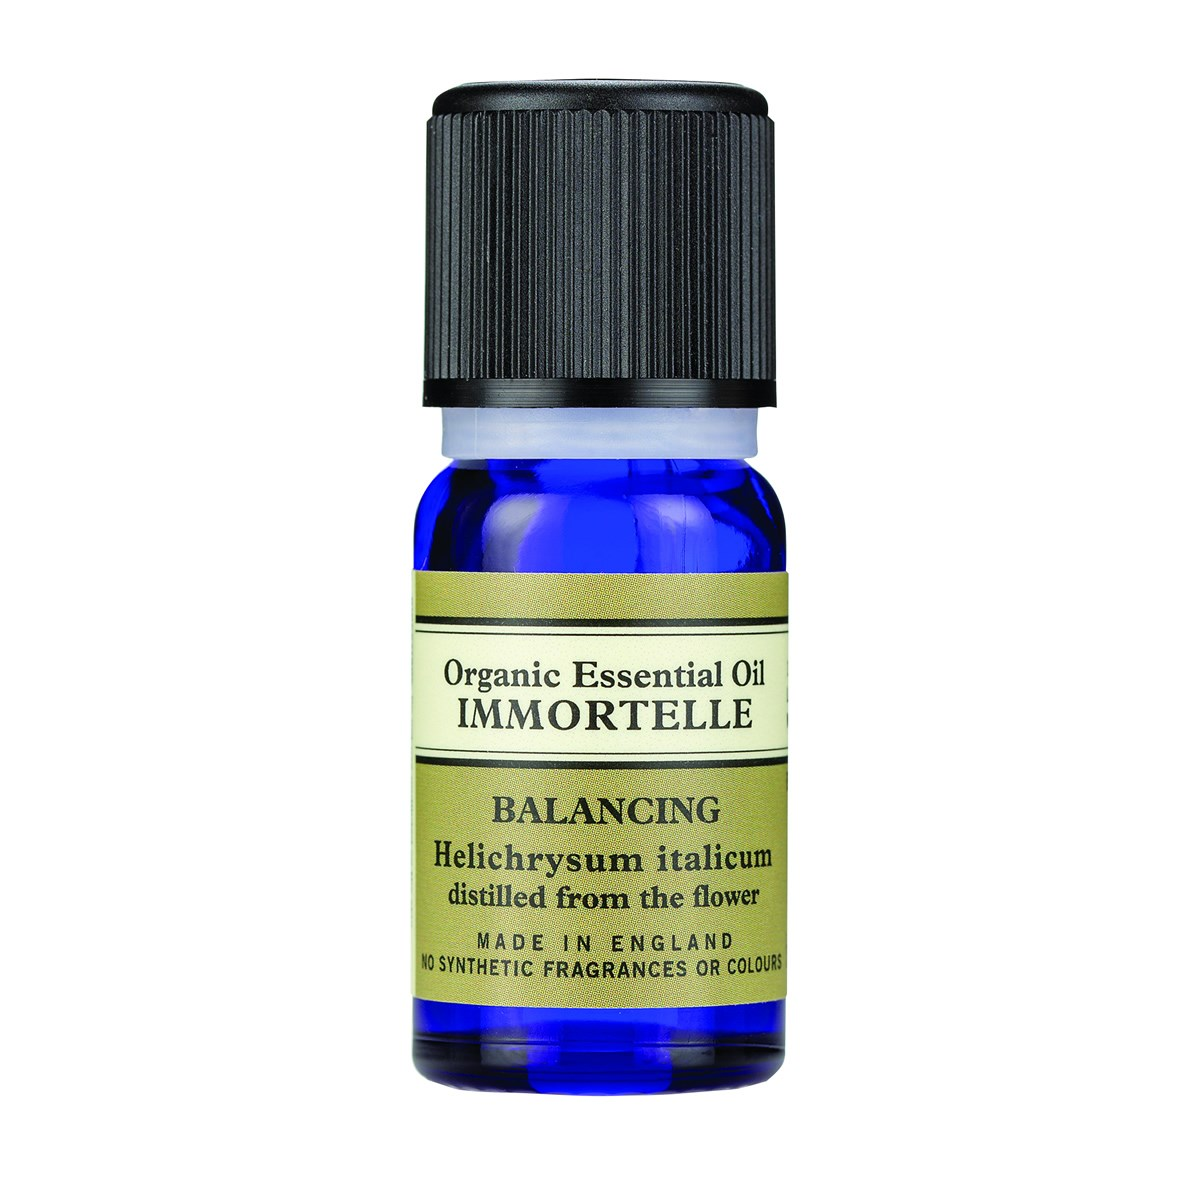 Neal's Yard Immortelle Organic Essential Oil